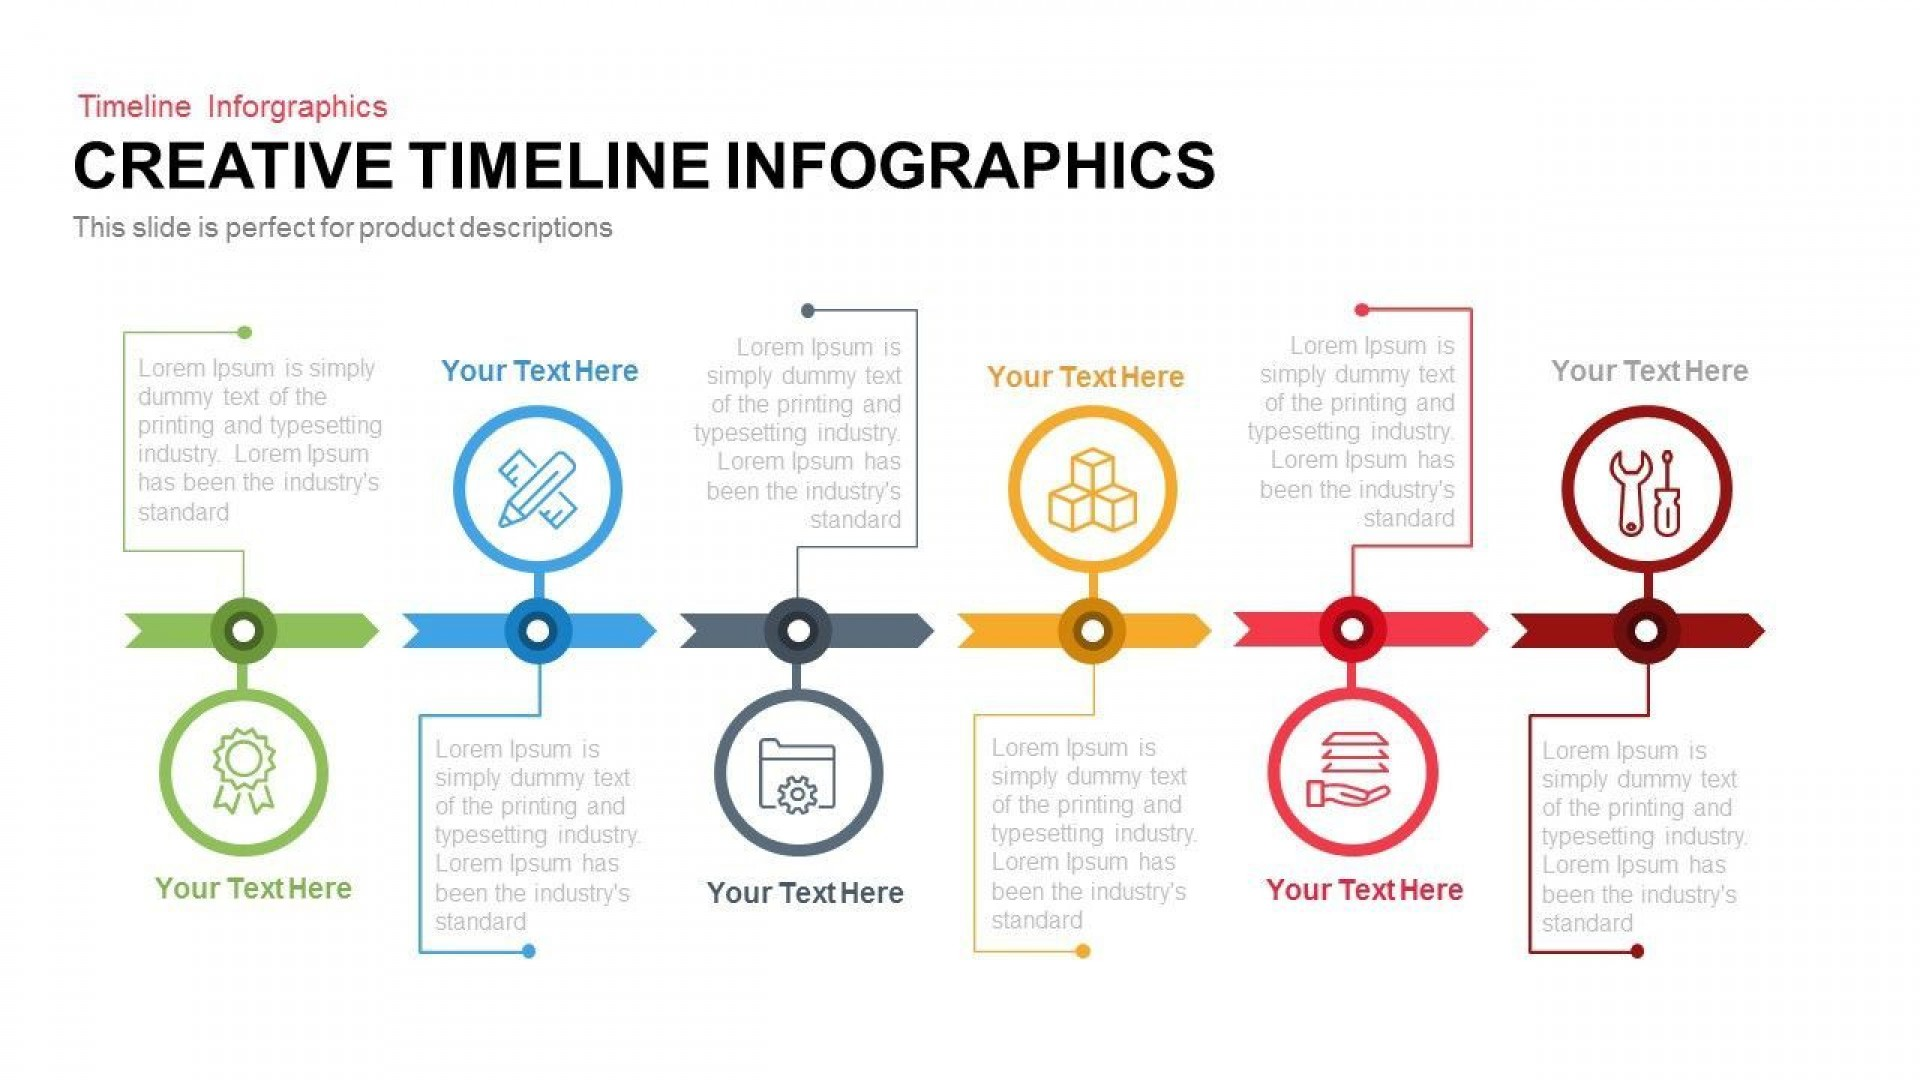 001 Wondrou Timeline Format For Ppt Image  Template Pptx Free Sheet1920